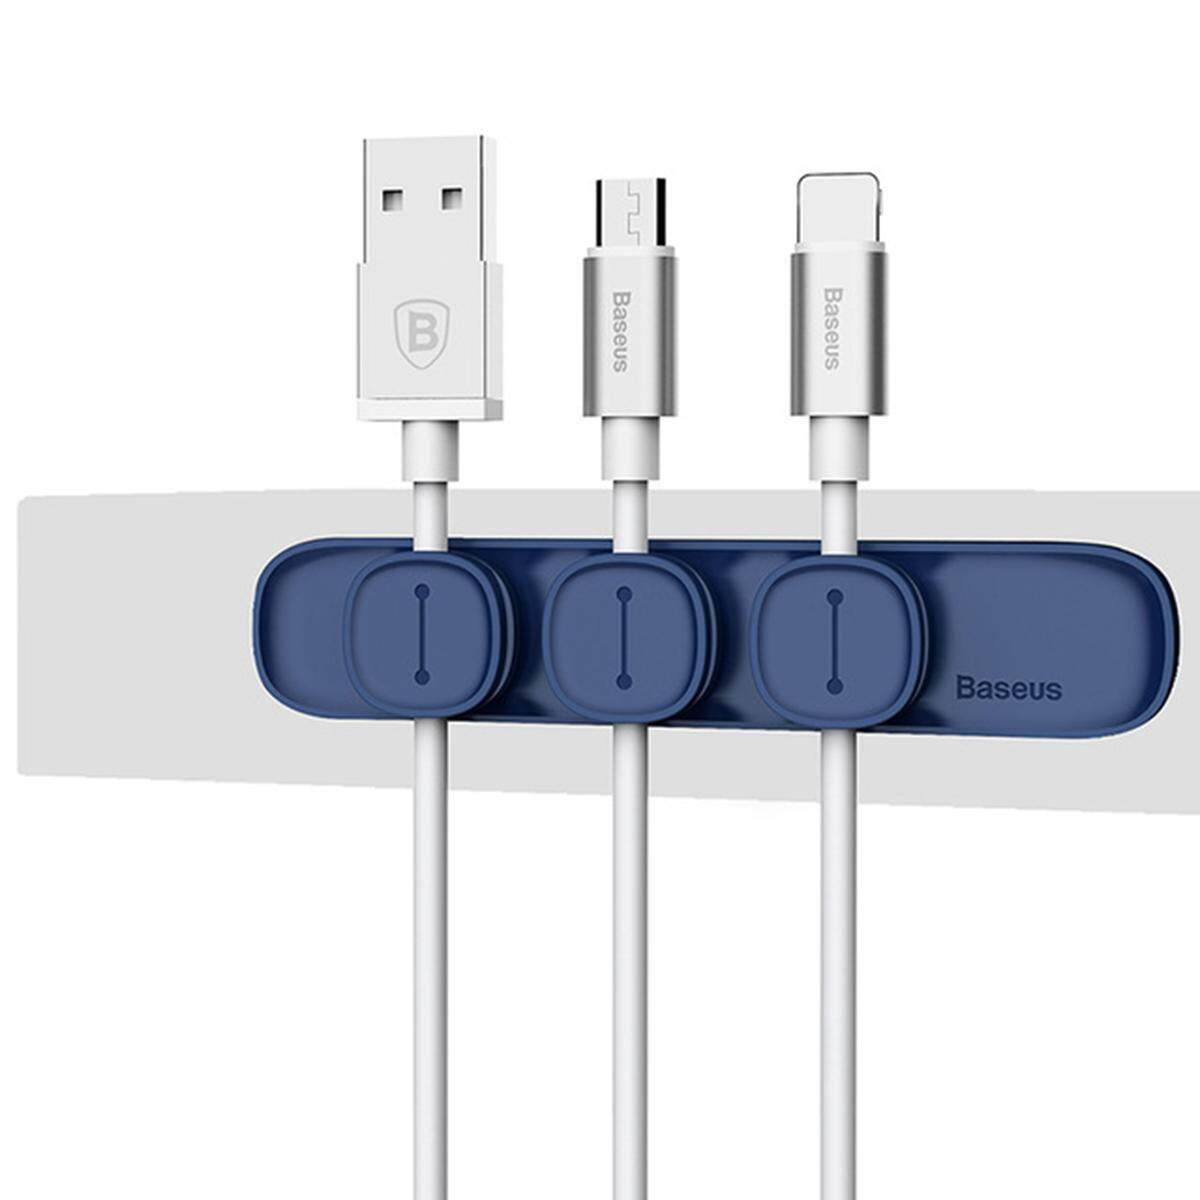 Baseus Durable Magnetic Cable Clip USB Cable Organizer Clamp Desktop Workstation Wire Cord Management Cable Winder - Dark Blue - intl